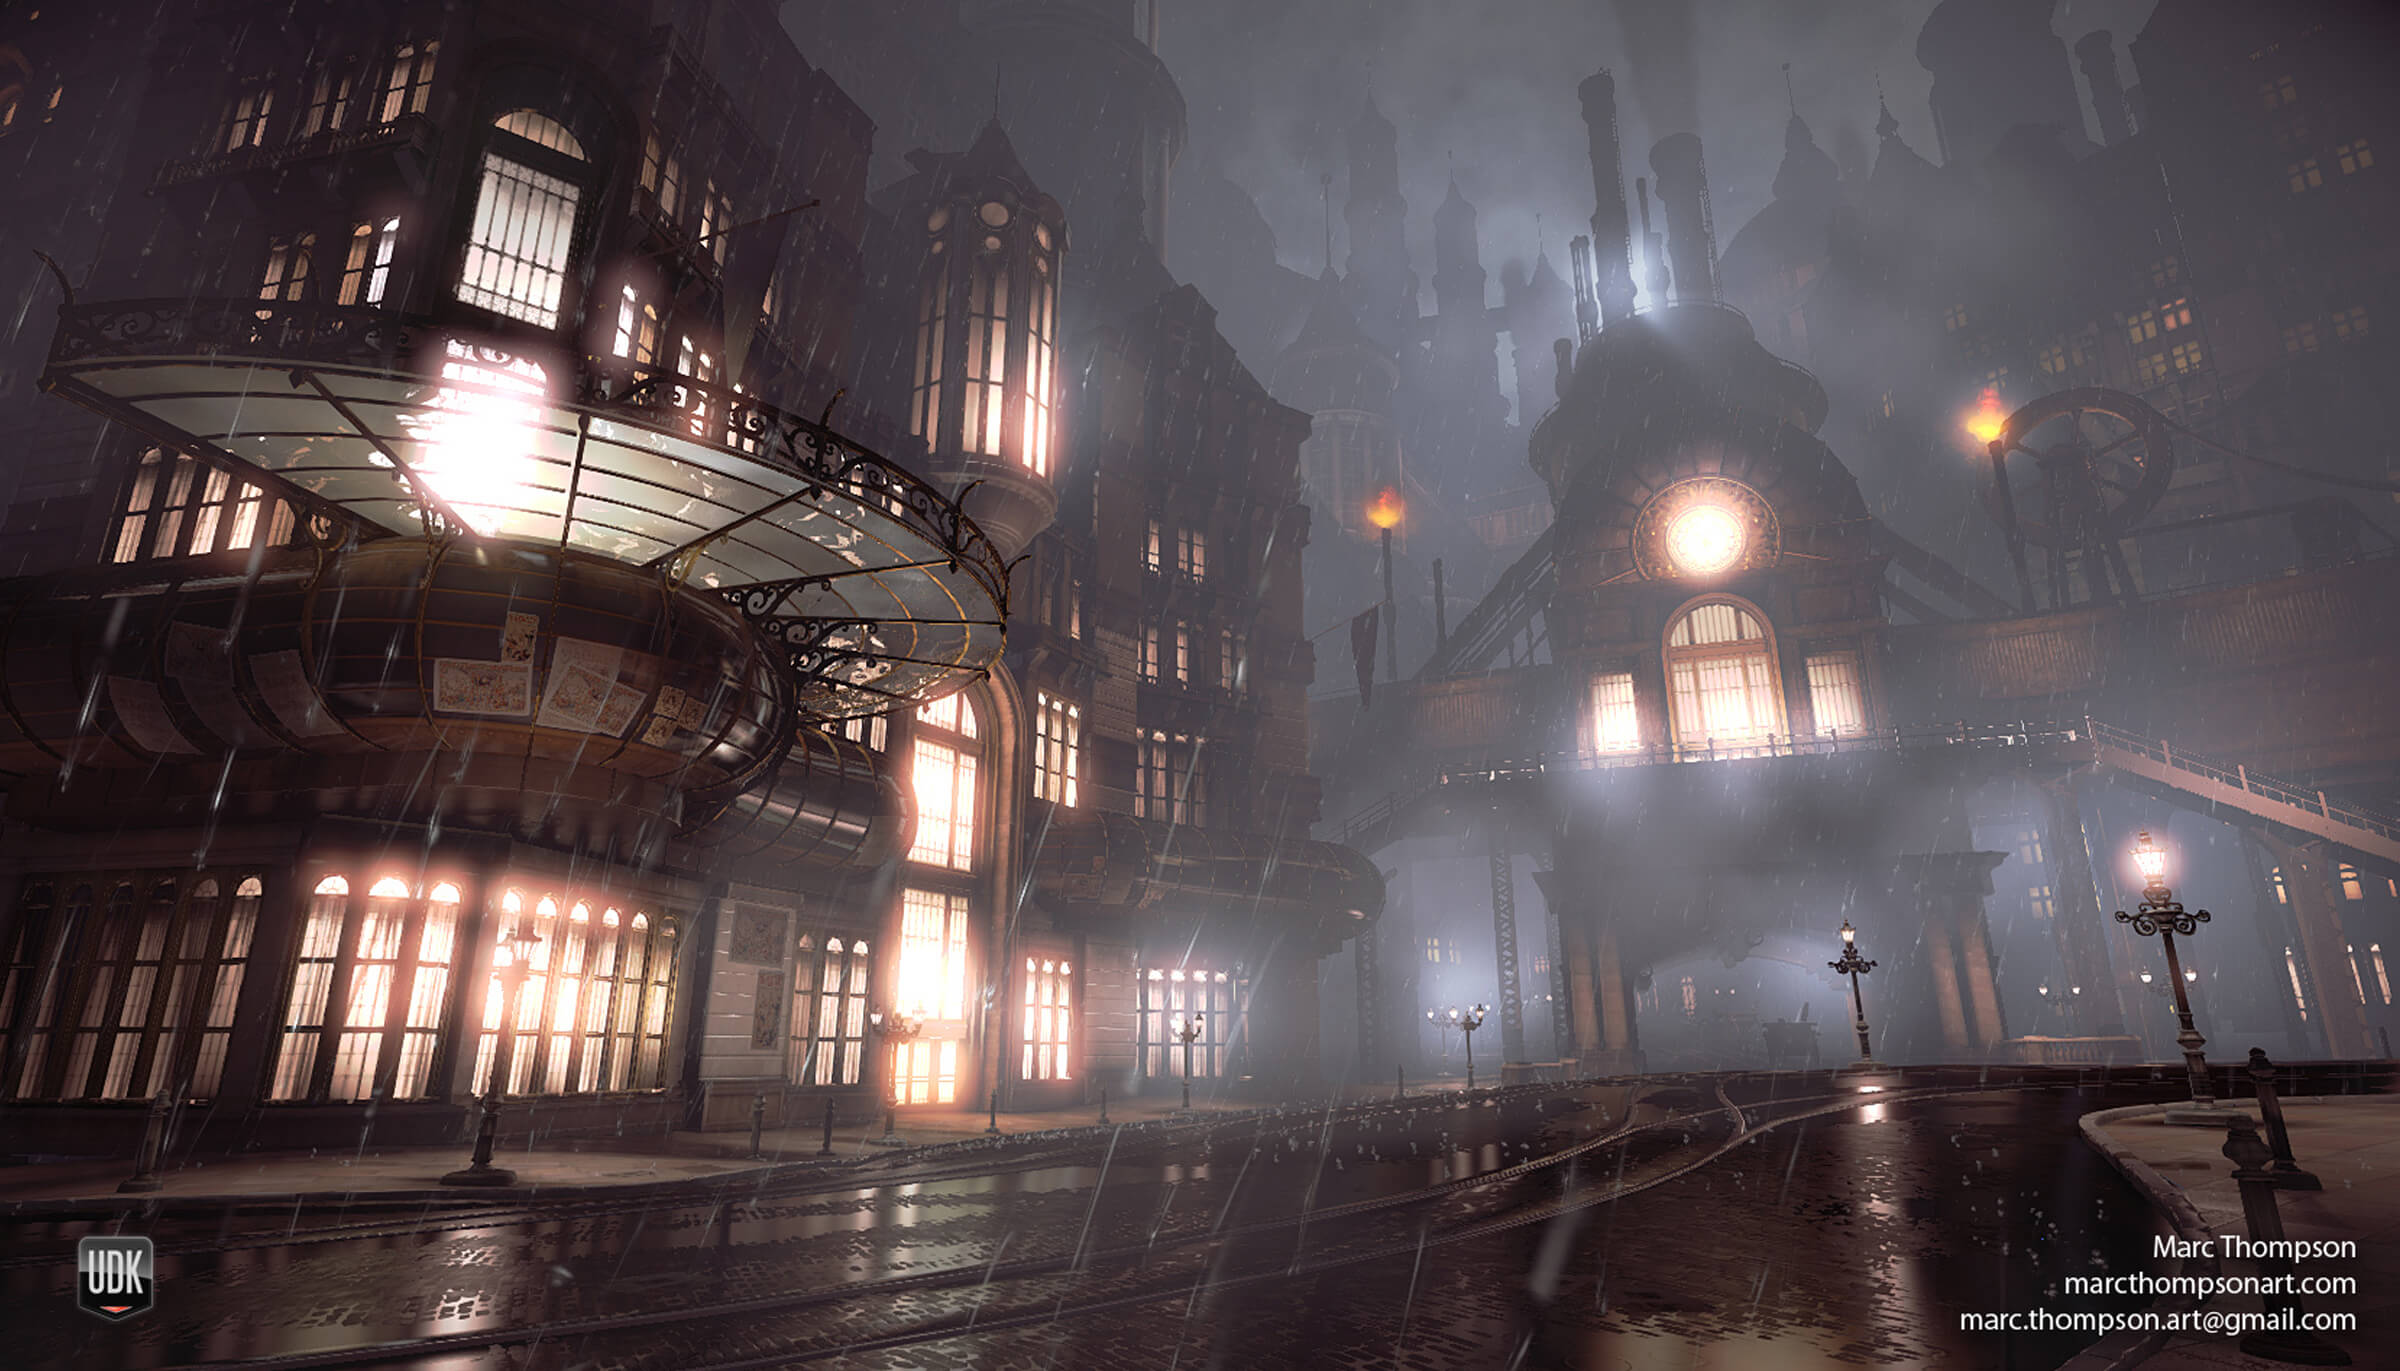 computer-generated 3D environment of lighted buildings on a rainy night